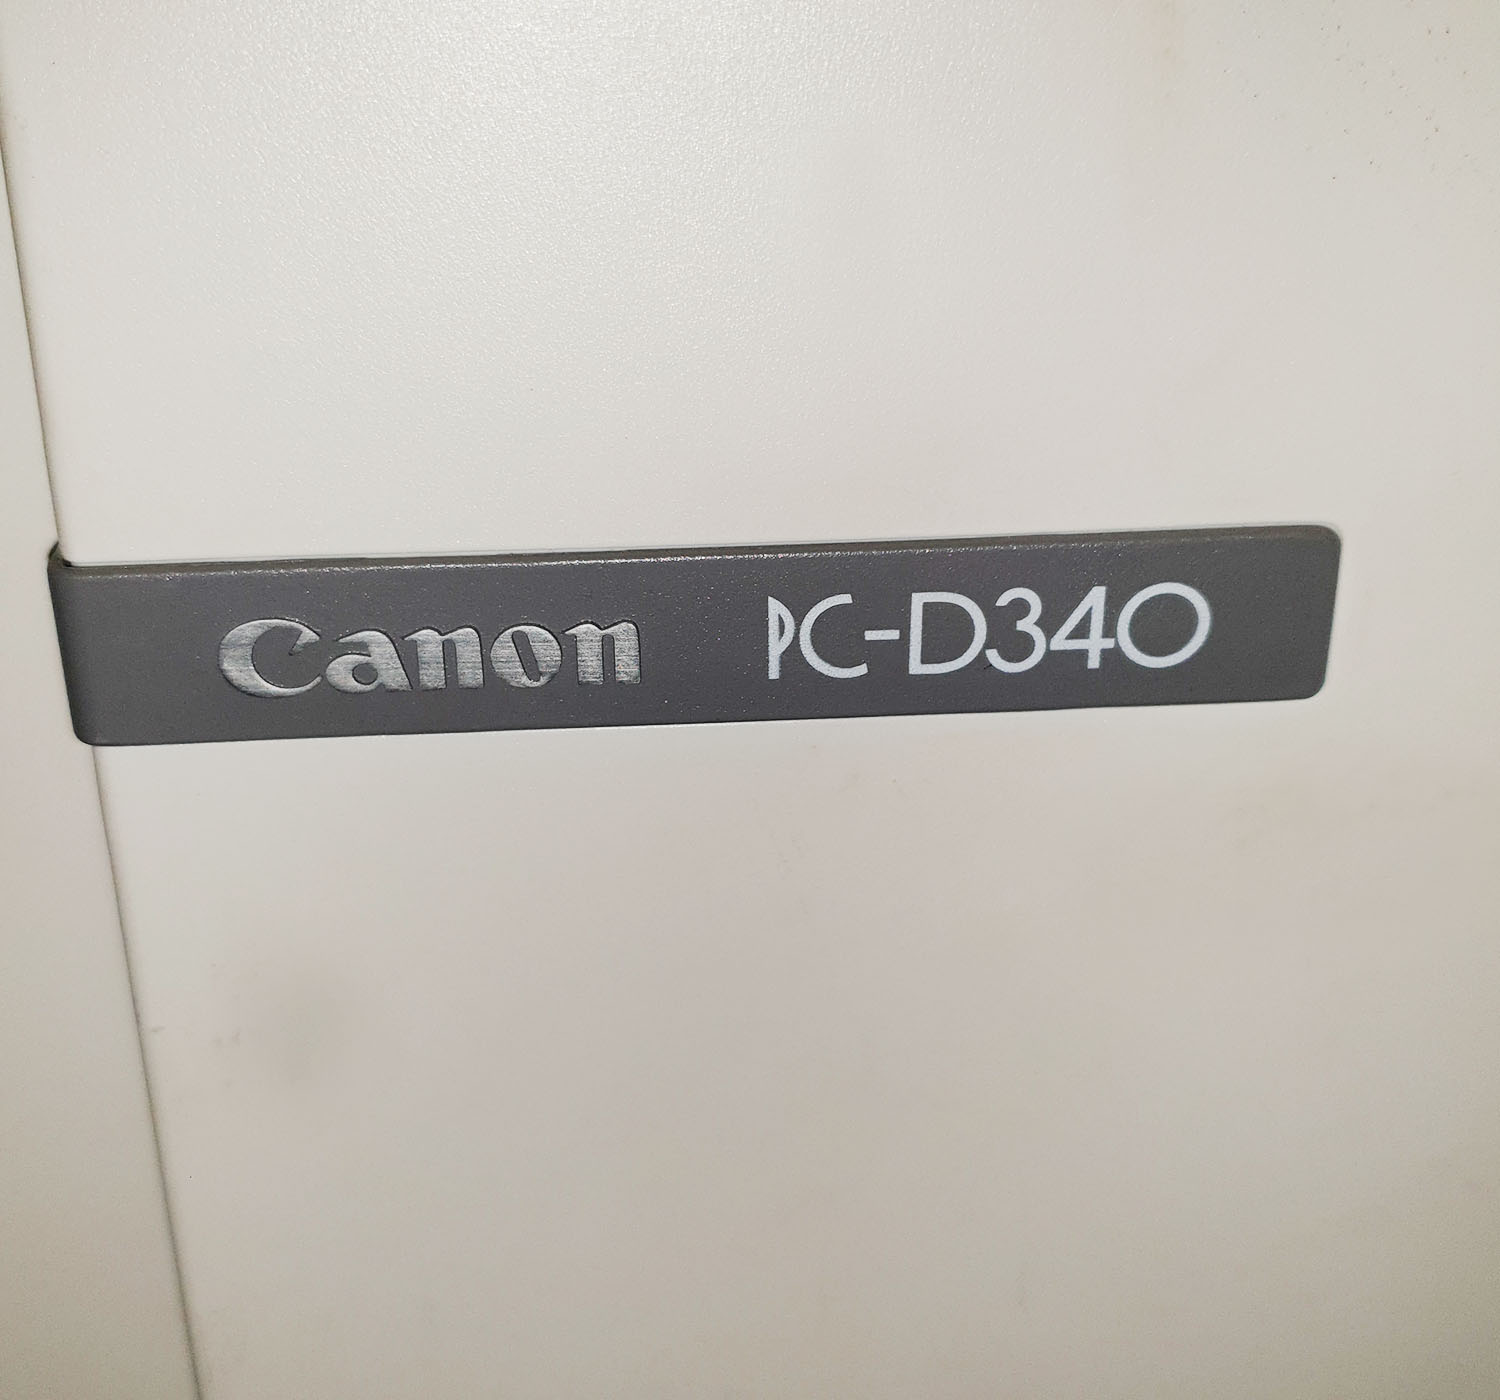 Canon PC-D340 Used A Usb A4 Laser B/W